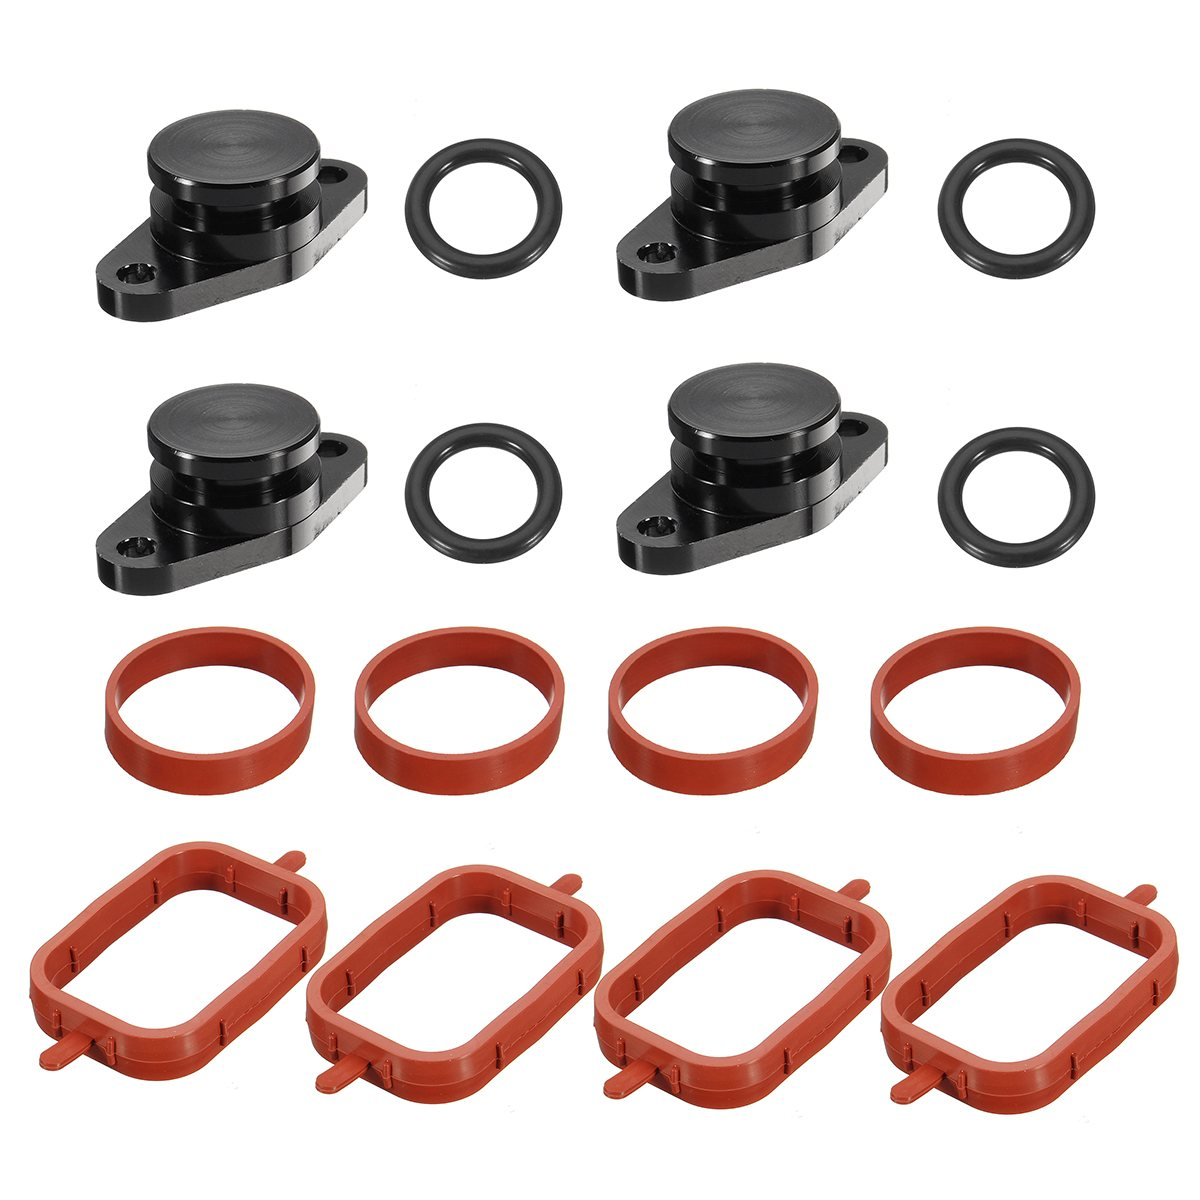 4x 22mm For BMW for Diesel Swirl Flap Blanks Repair With Intake Manifold Gaskets